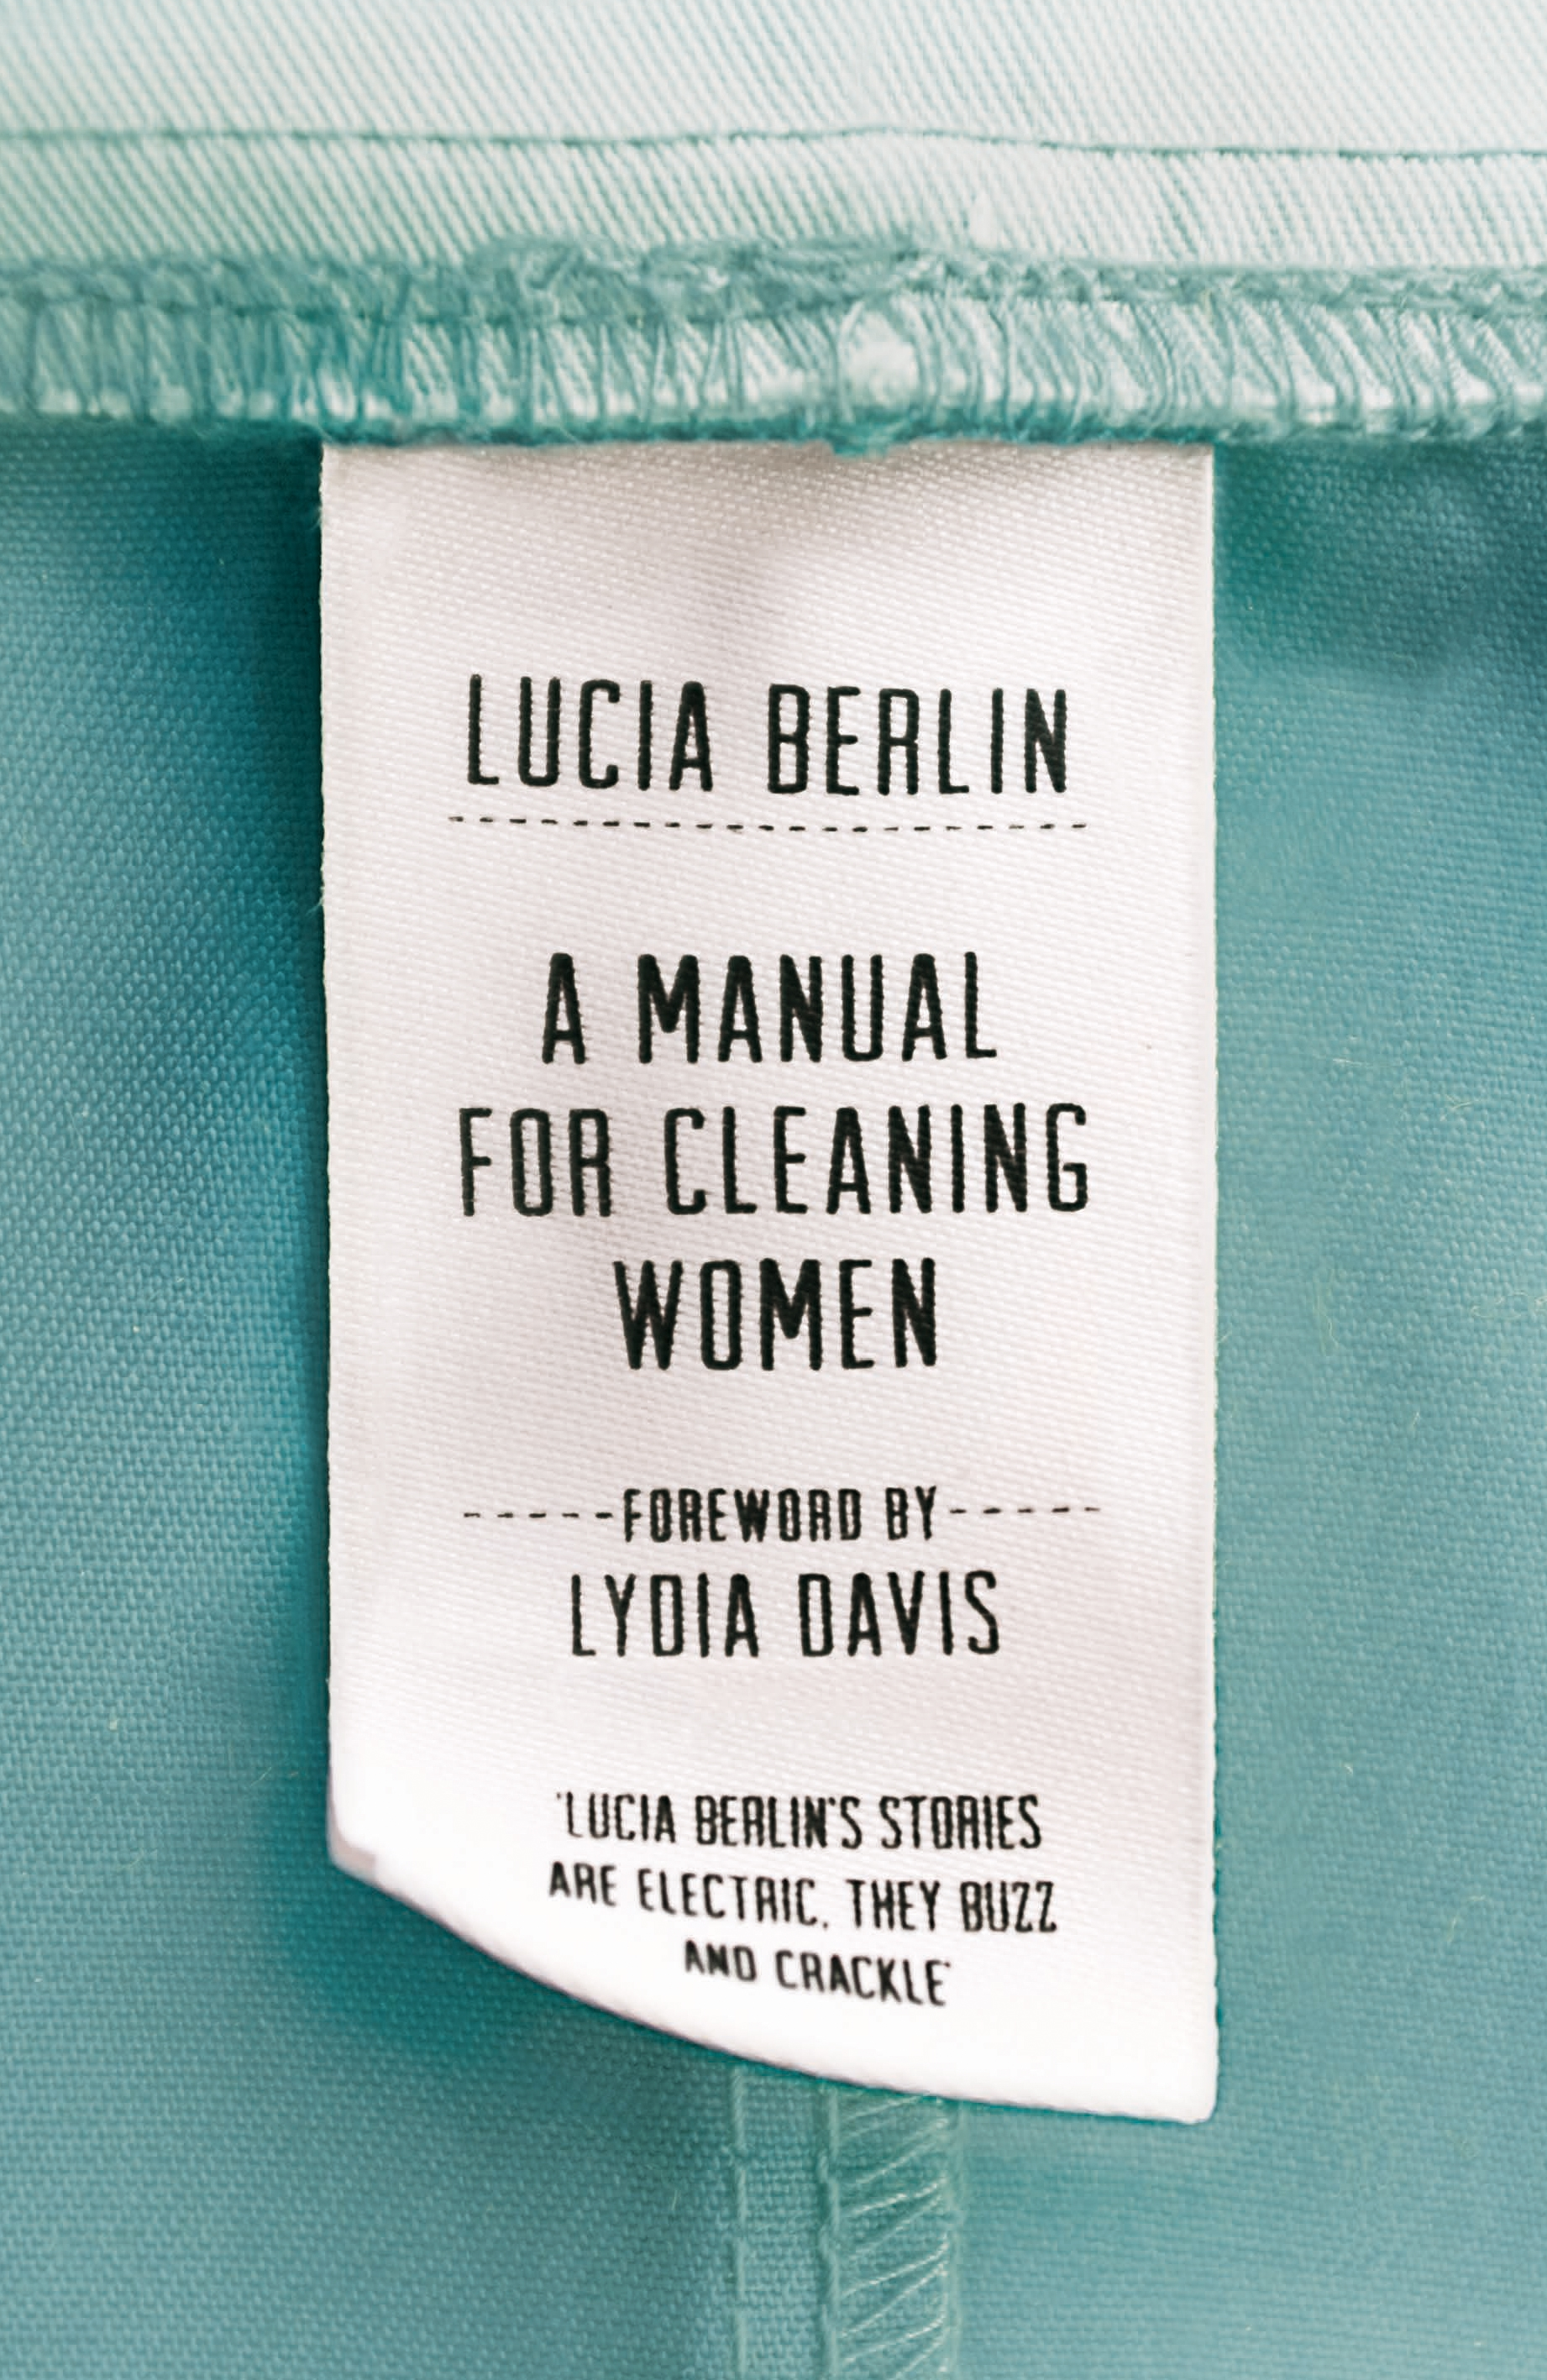 9781447290438A Manual for Cleaning Women.jpg